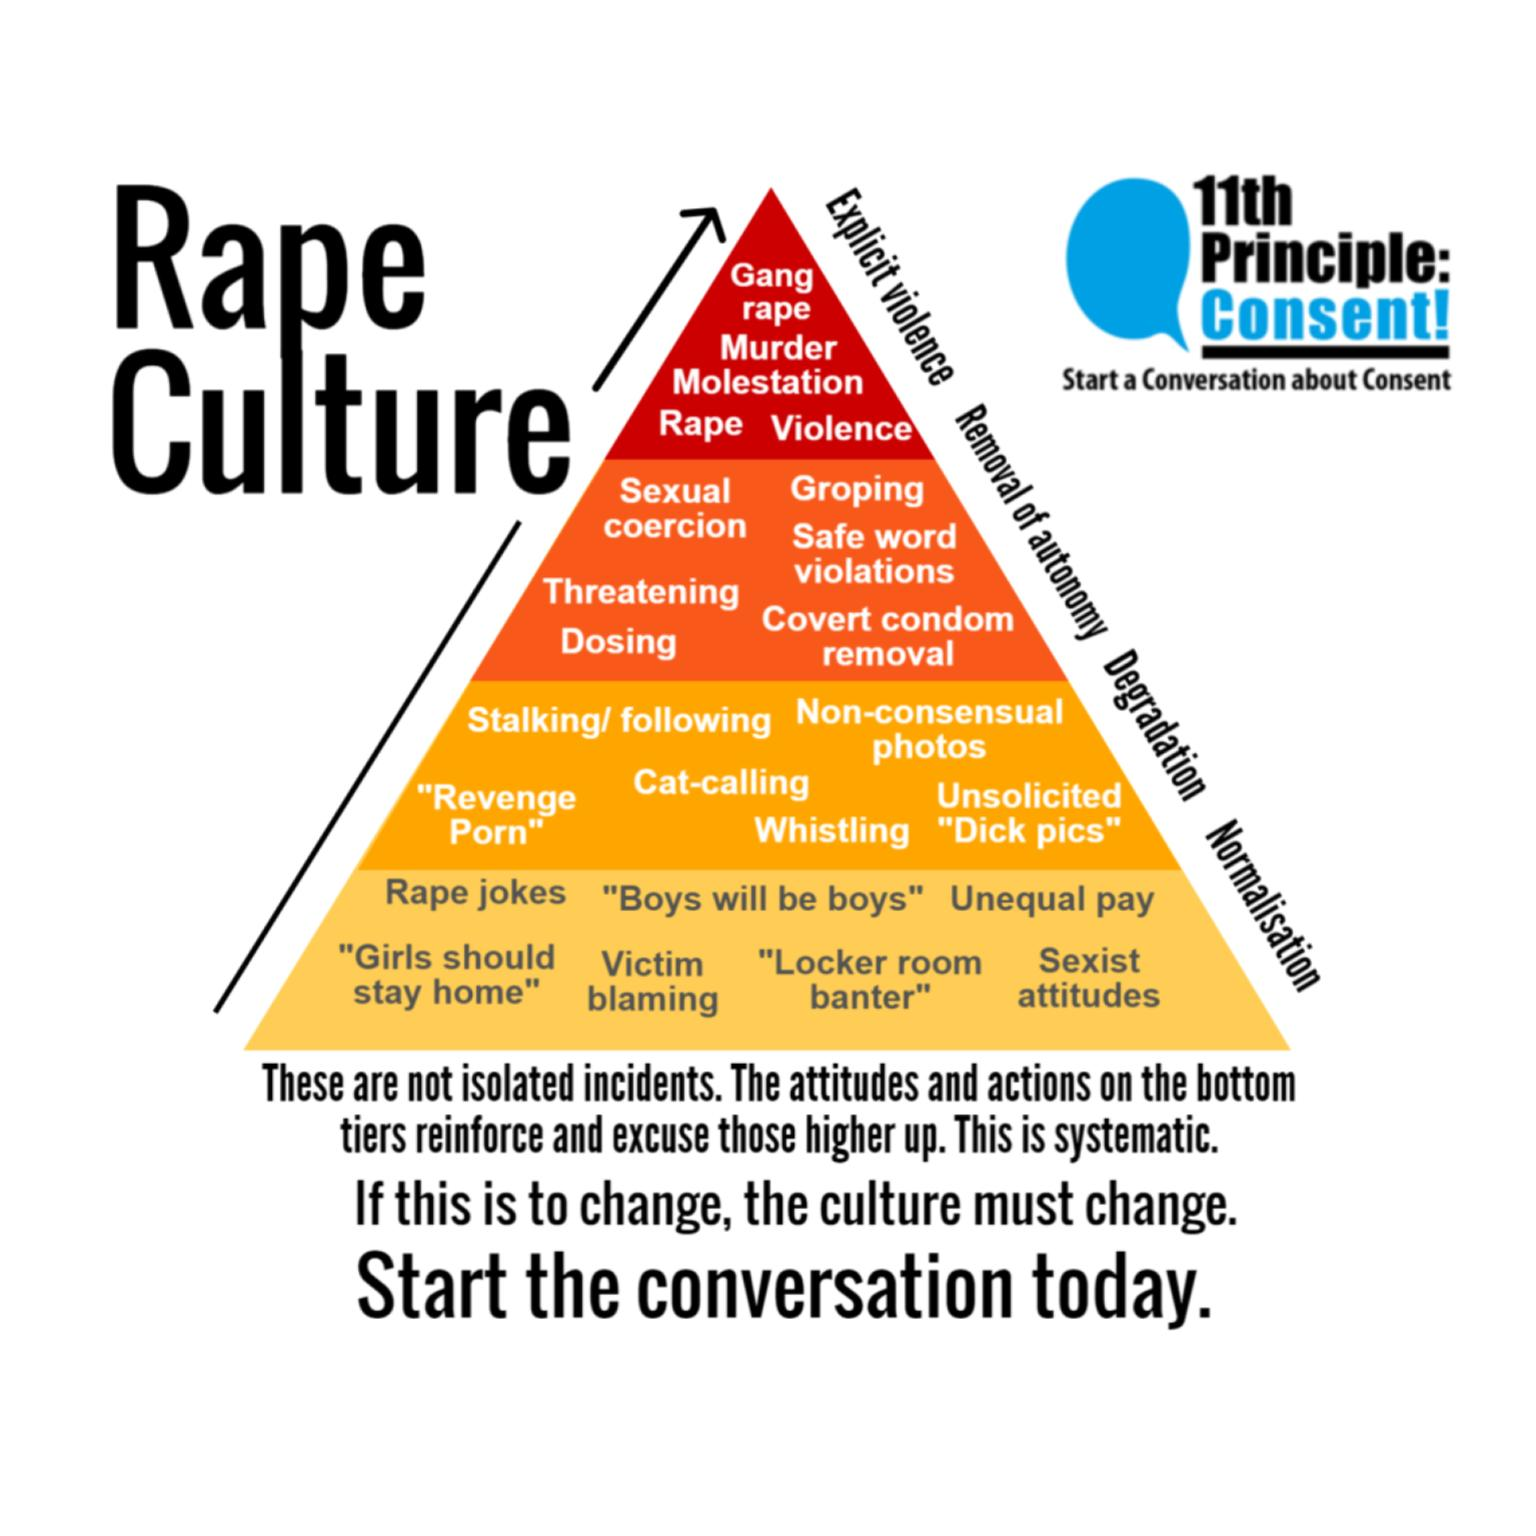 Explore how our culture conditions us to place some groups' wants above others' needs, the role of misogyny, and how to start cultivating consent culture.